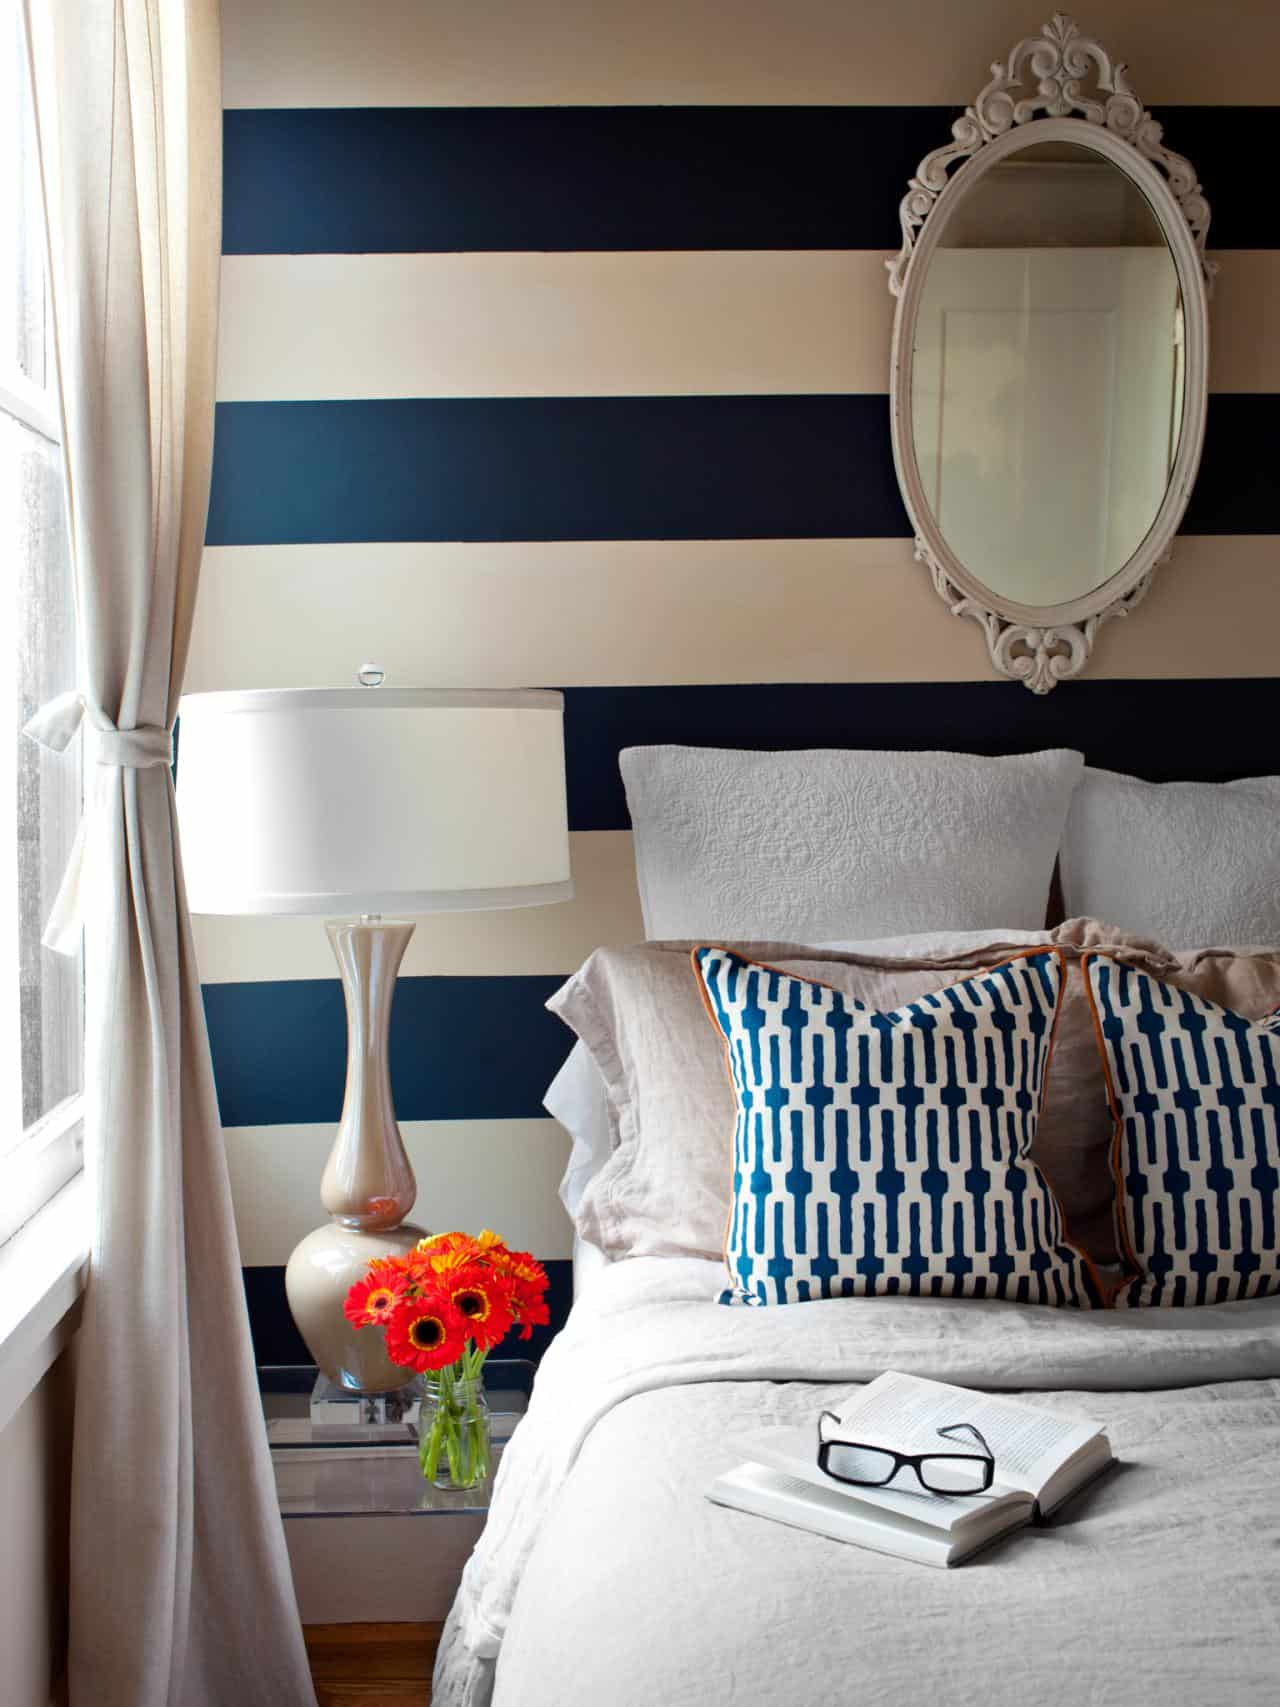 Stripes are great in the bedroom because they expand the space while bringing a new color scheme to the room.